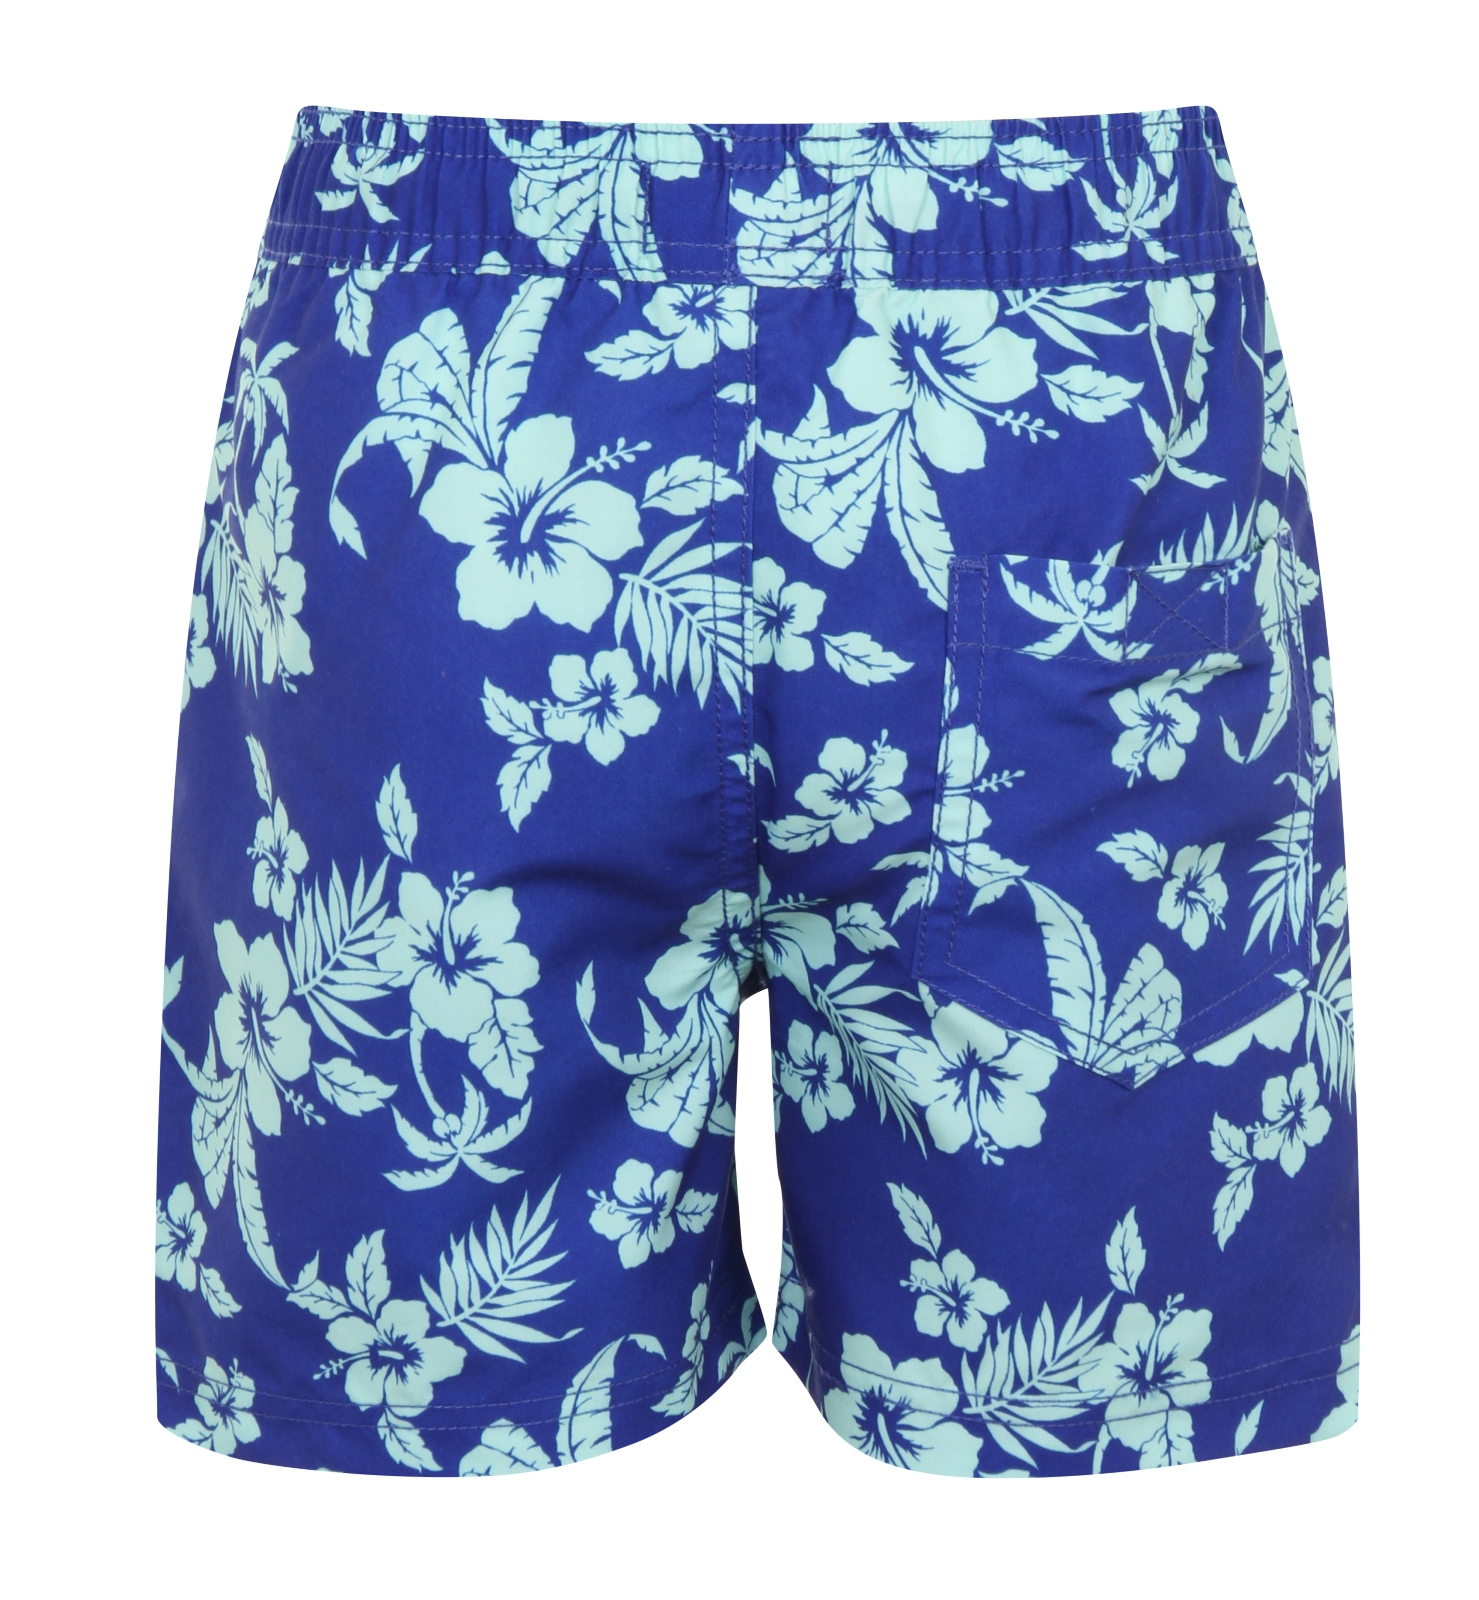 Men's Swim Trunks and Board Shorts. Planning a day at the beach or a weekend of relaxation by the pool? Looking for the perfect swimsuit? Nautica men's swimwear combines classic nautical style with innovative fabrication.